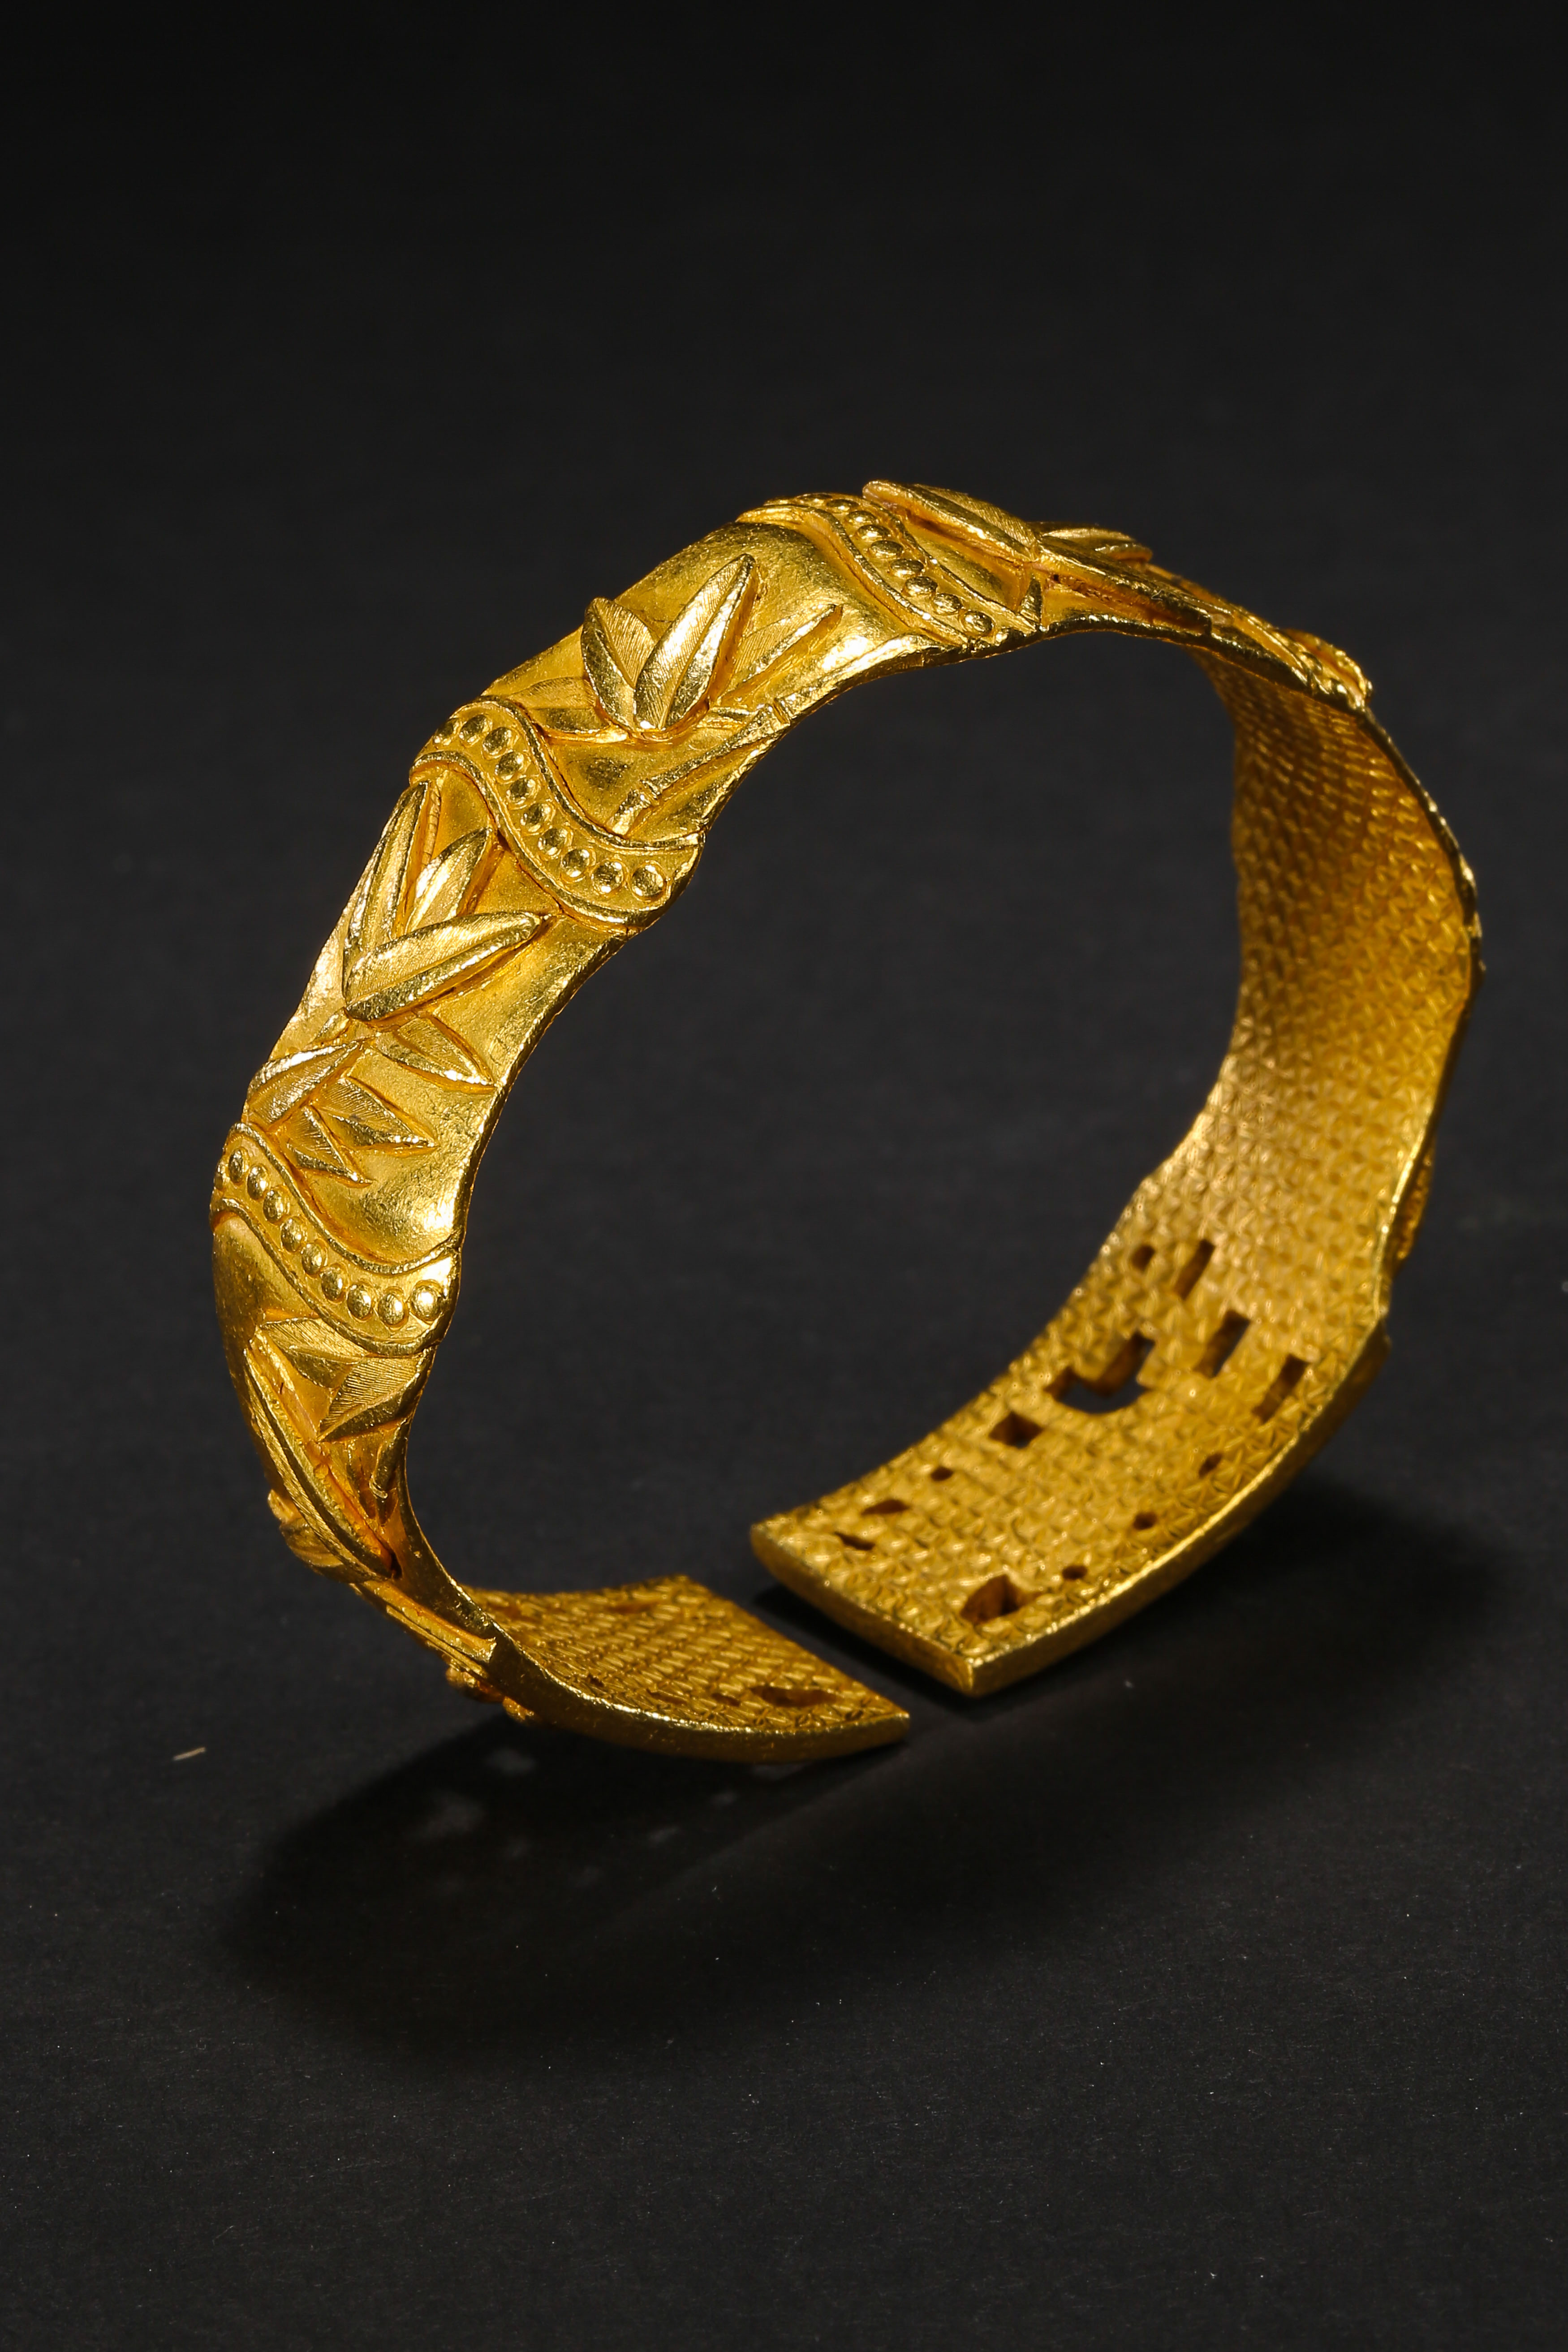 A PAIR OF PURE GOLD BRACELETS, QING DYNASTY, CHINA - Image 4 of 11